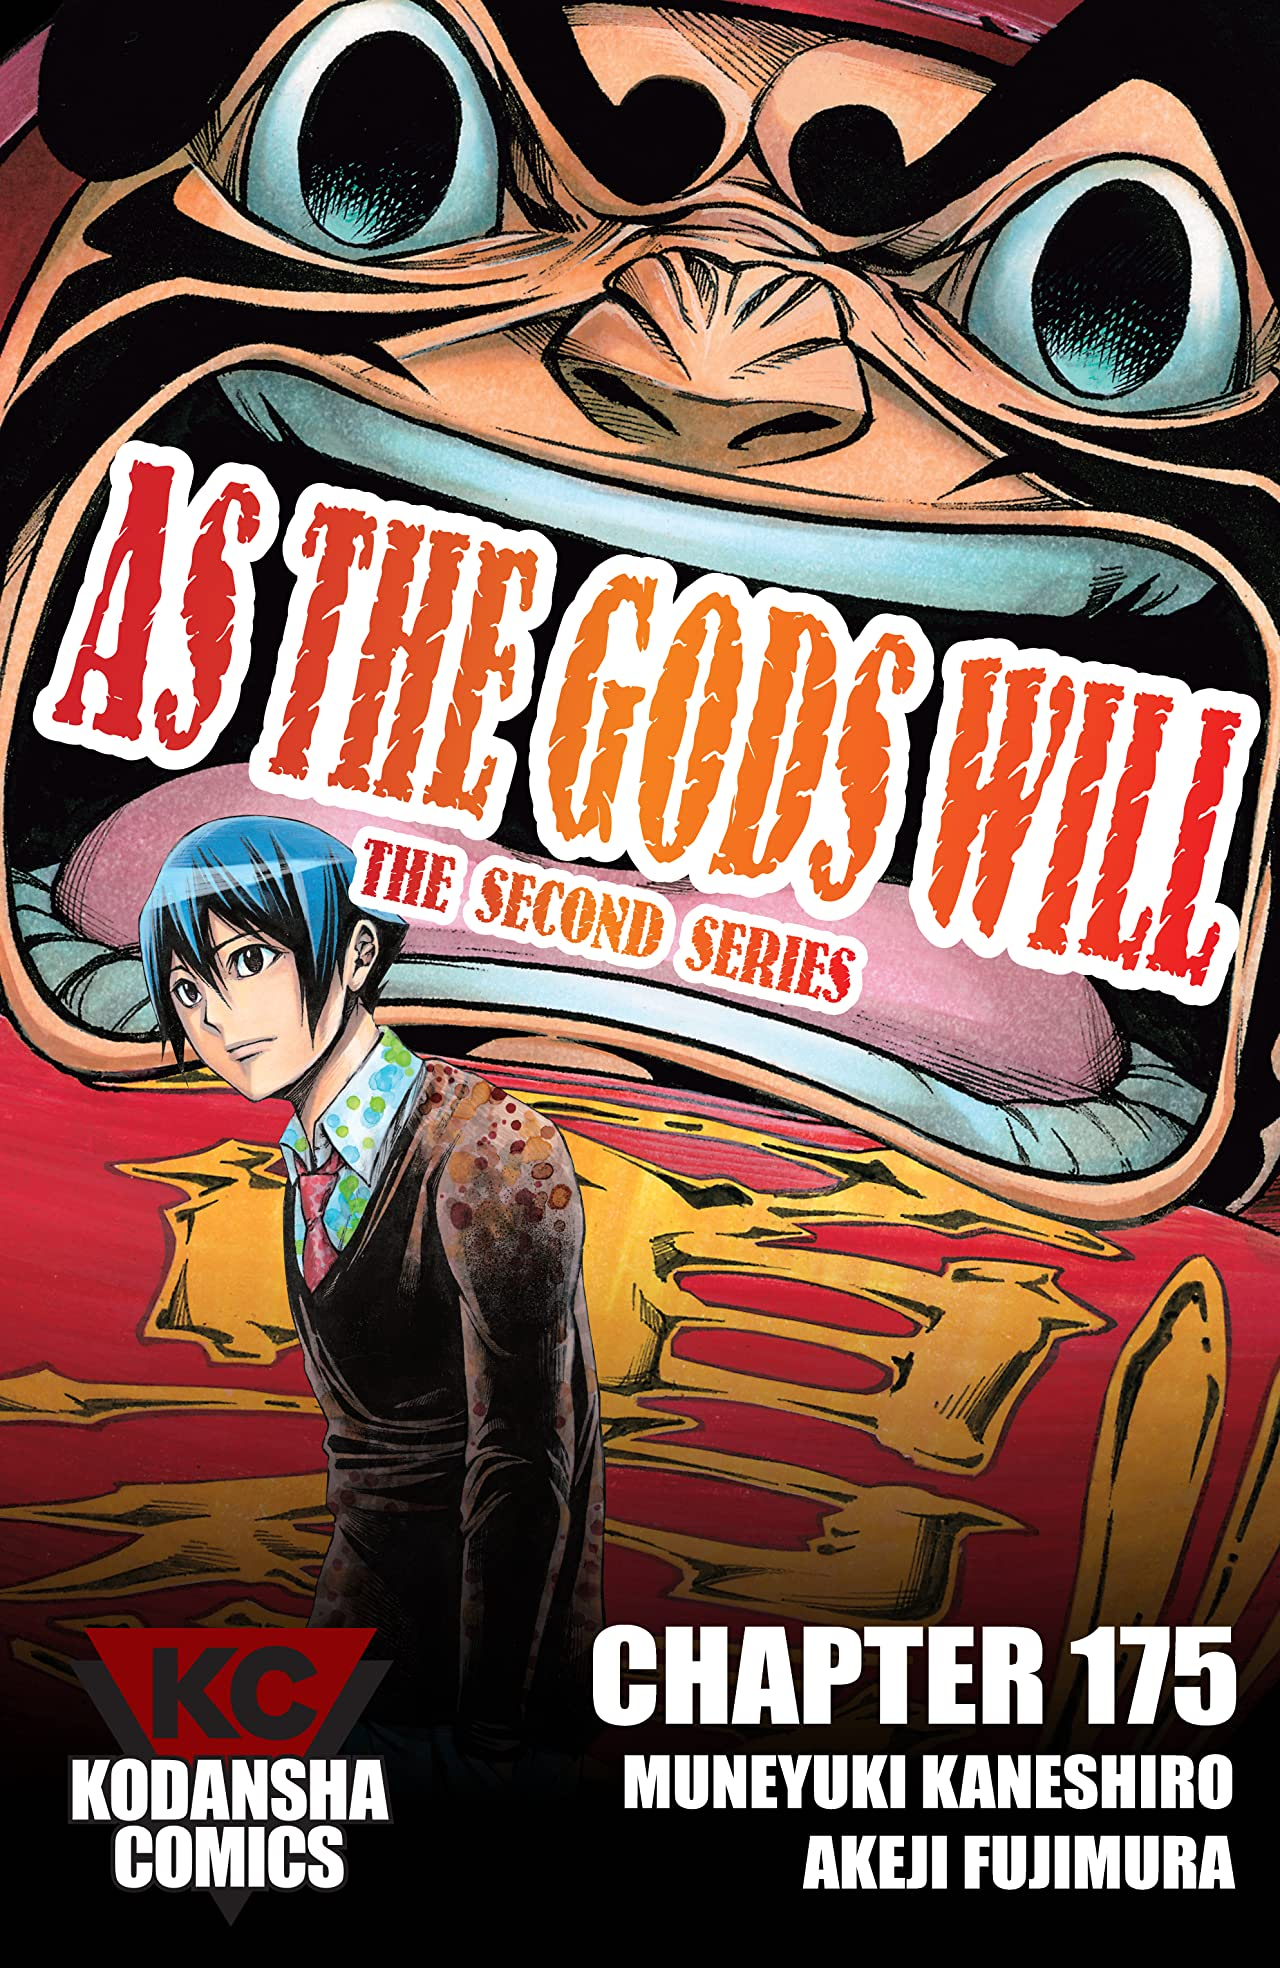 As The Gods Will: The Second Series #175